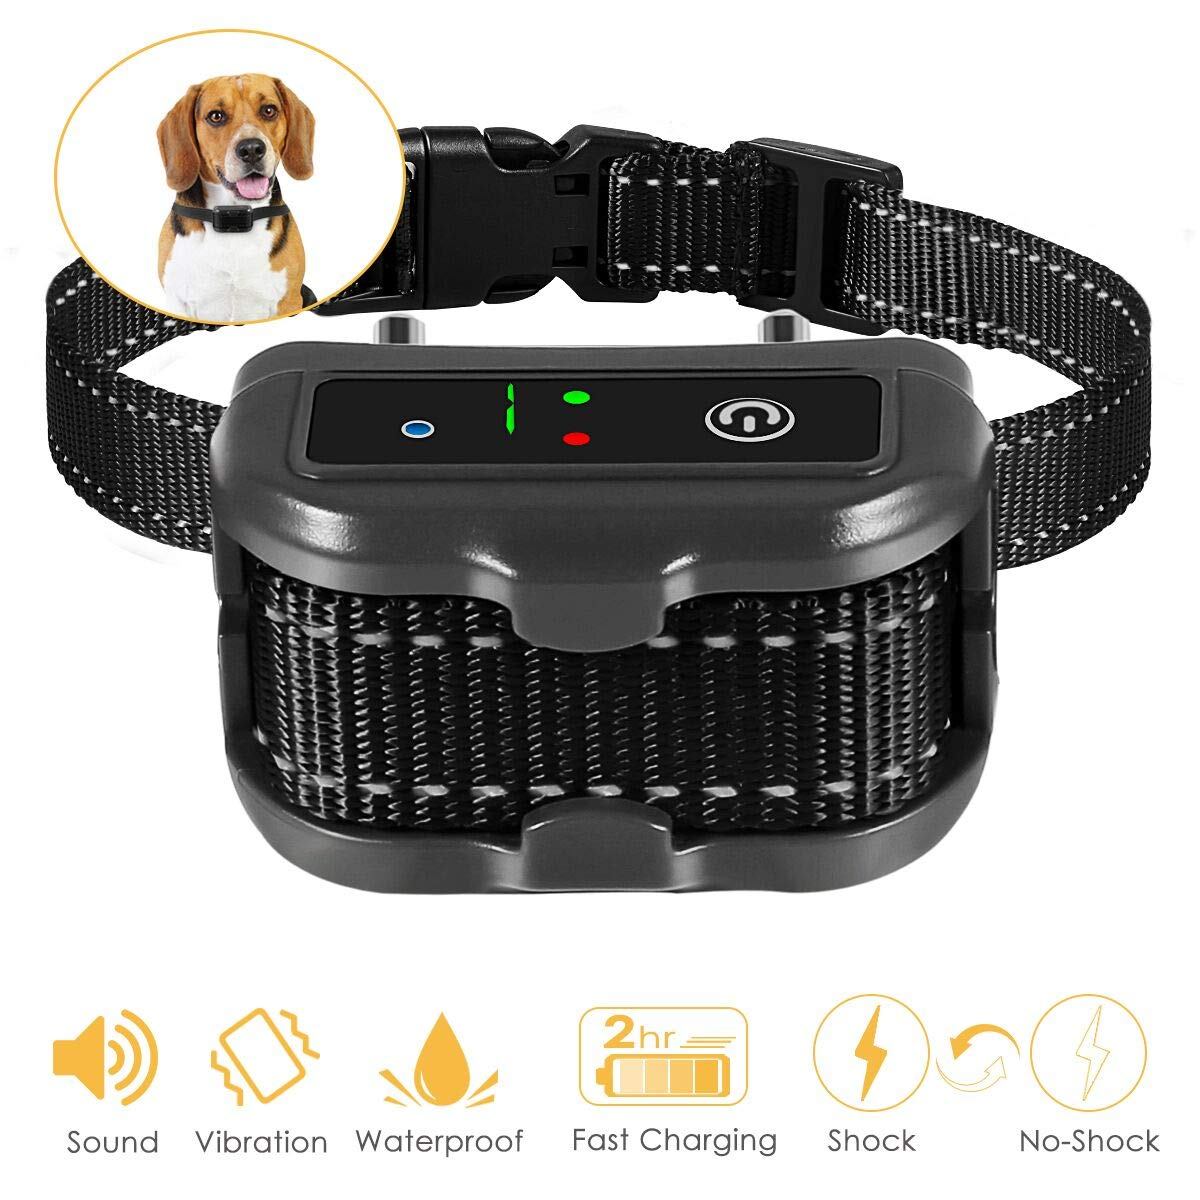 ELenest Bark Collar, 2019 Upgraded Smark Barking Control Device, Adjustable Vibration, Shock Sensitivity Level, Rechargeable Waterproof, Barking Detection for Small Large Dog, No Bark Collar